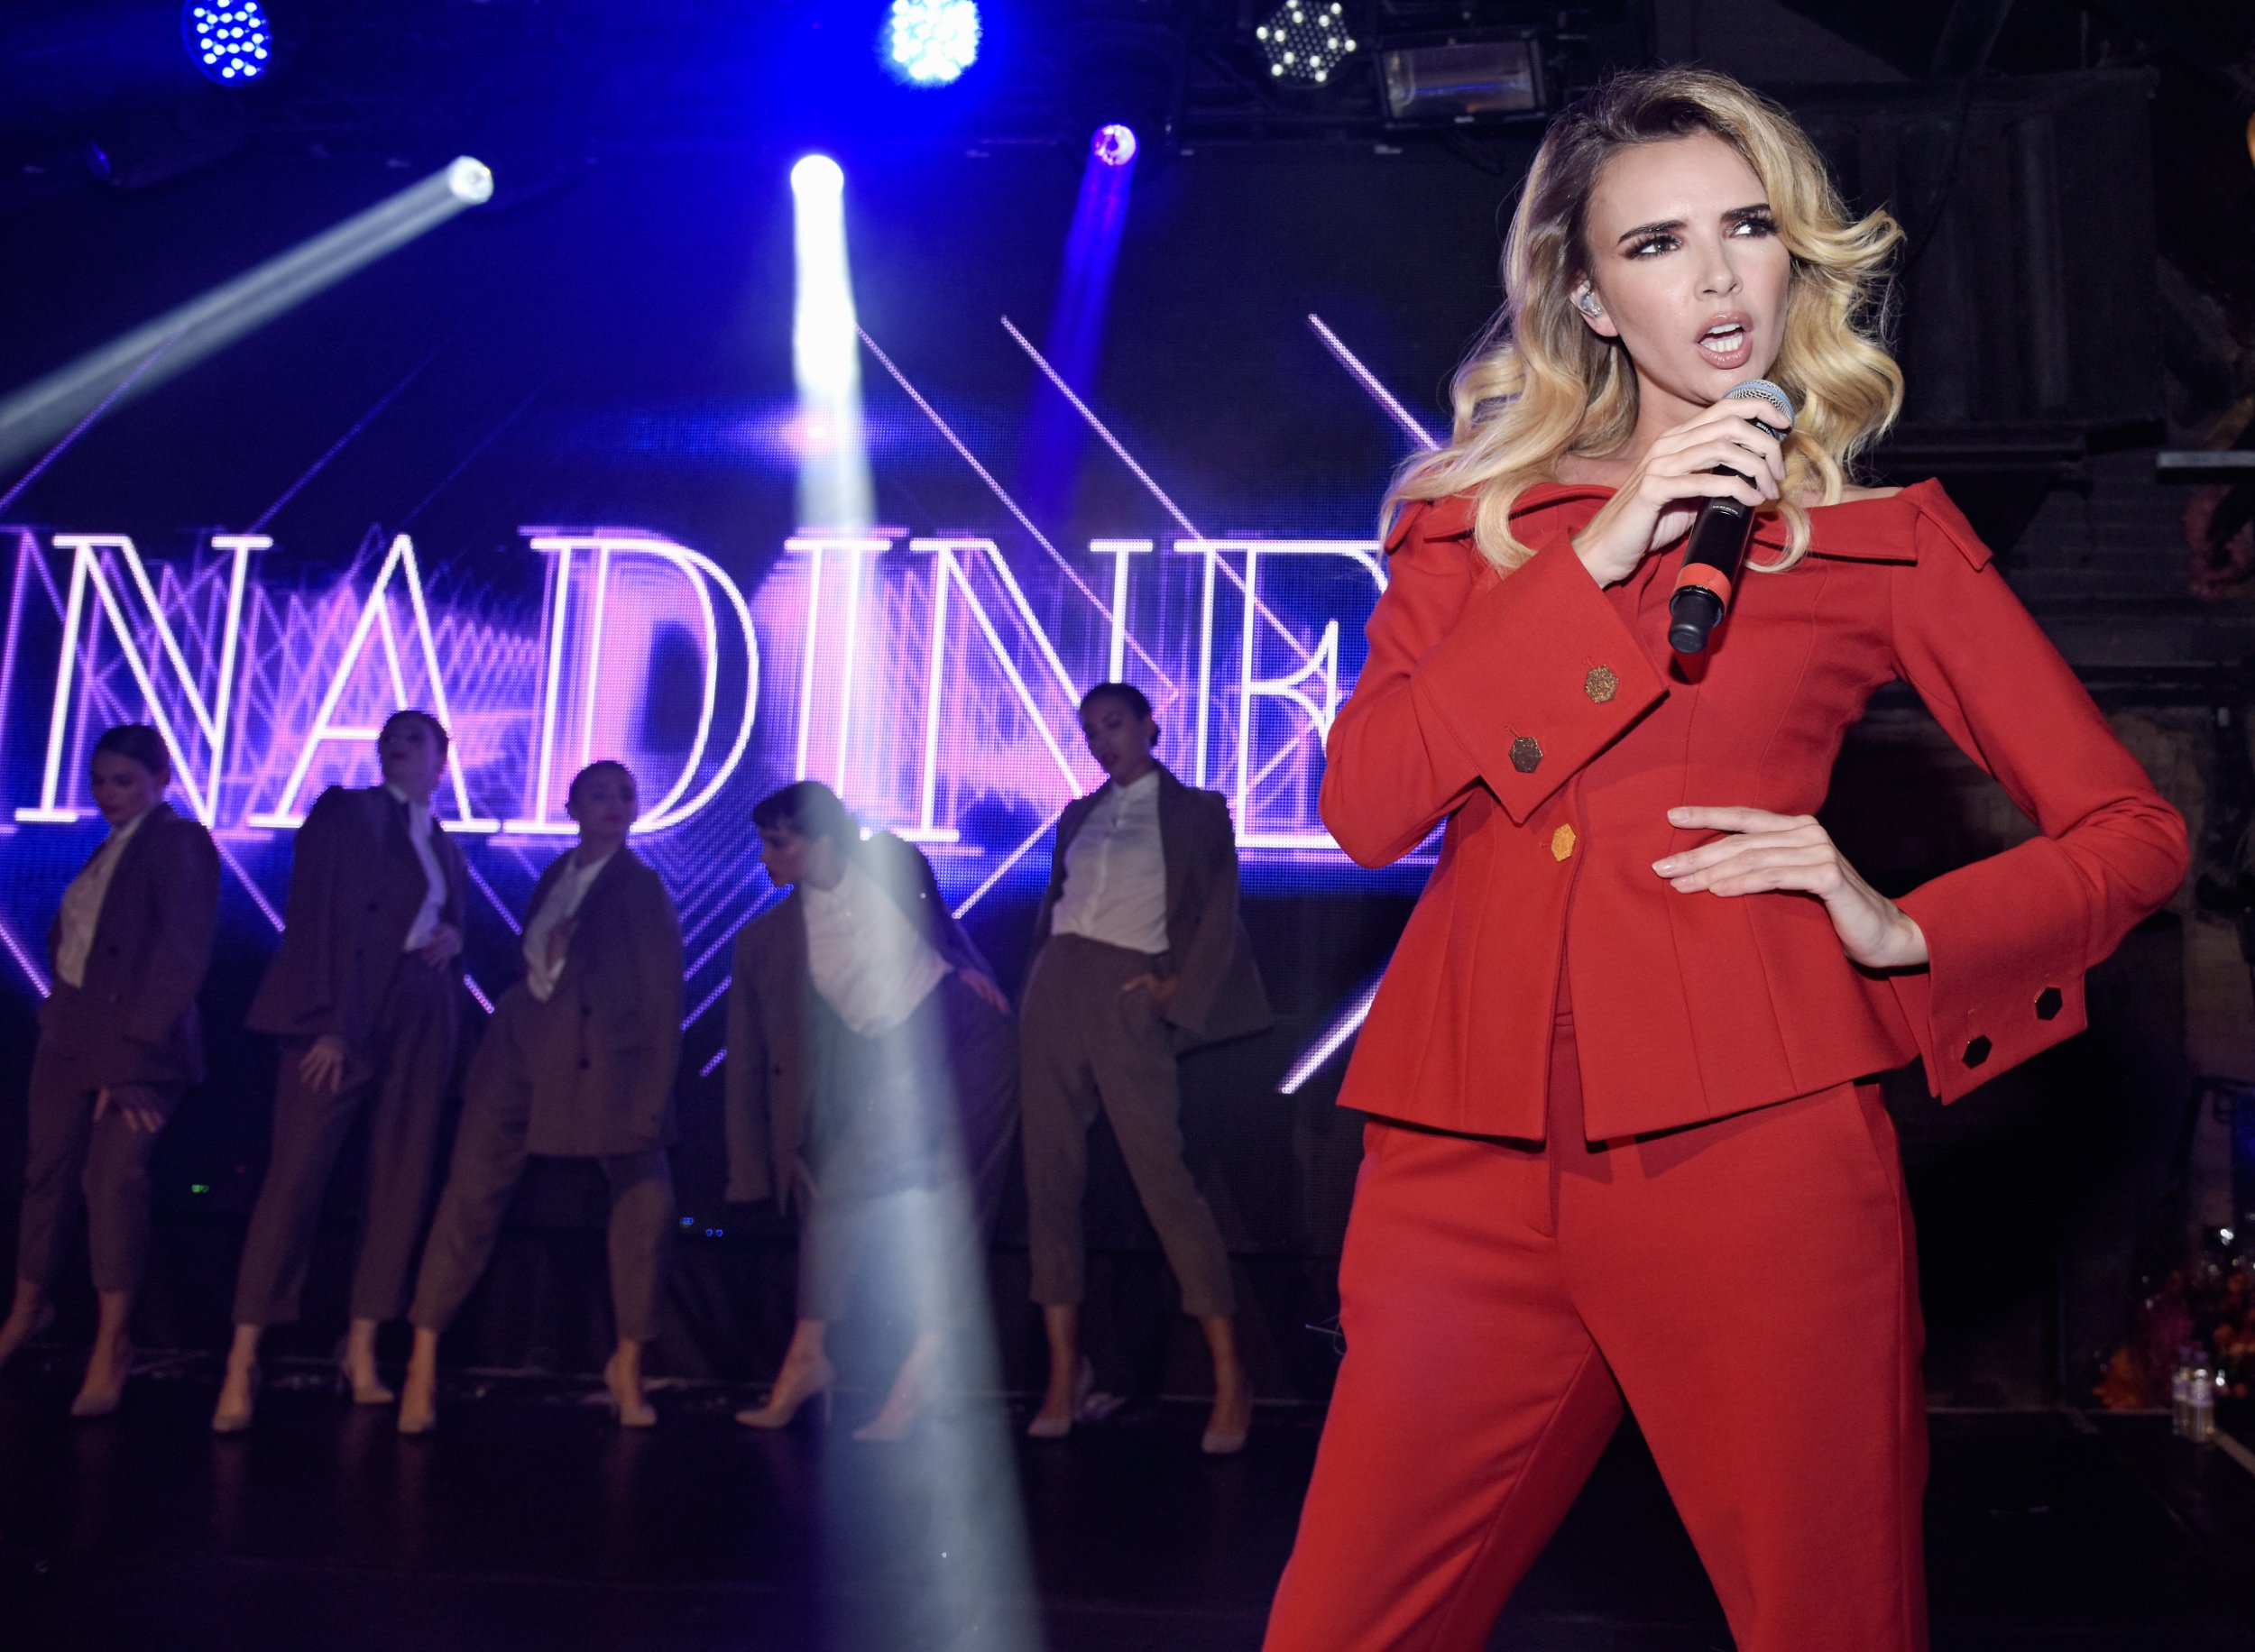 'It makes me want to be sick!' Nadine Coyle can't watch X Factor because it reminds her how terrifying it was auditioning for Girls Aloud